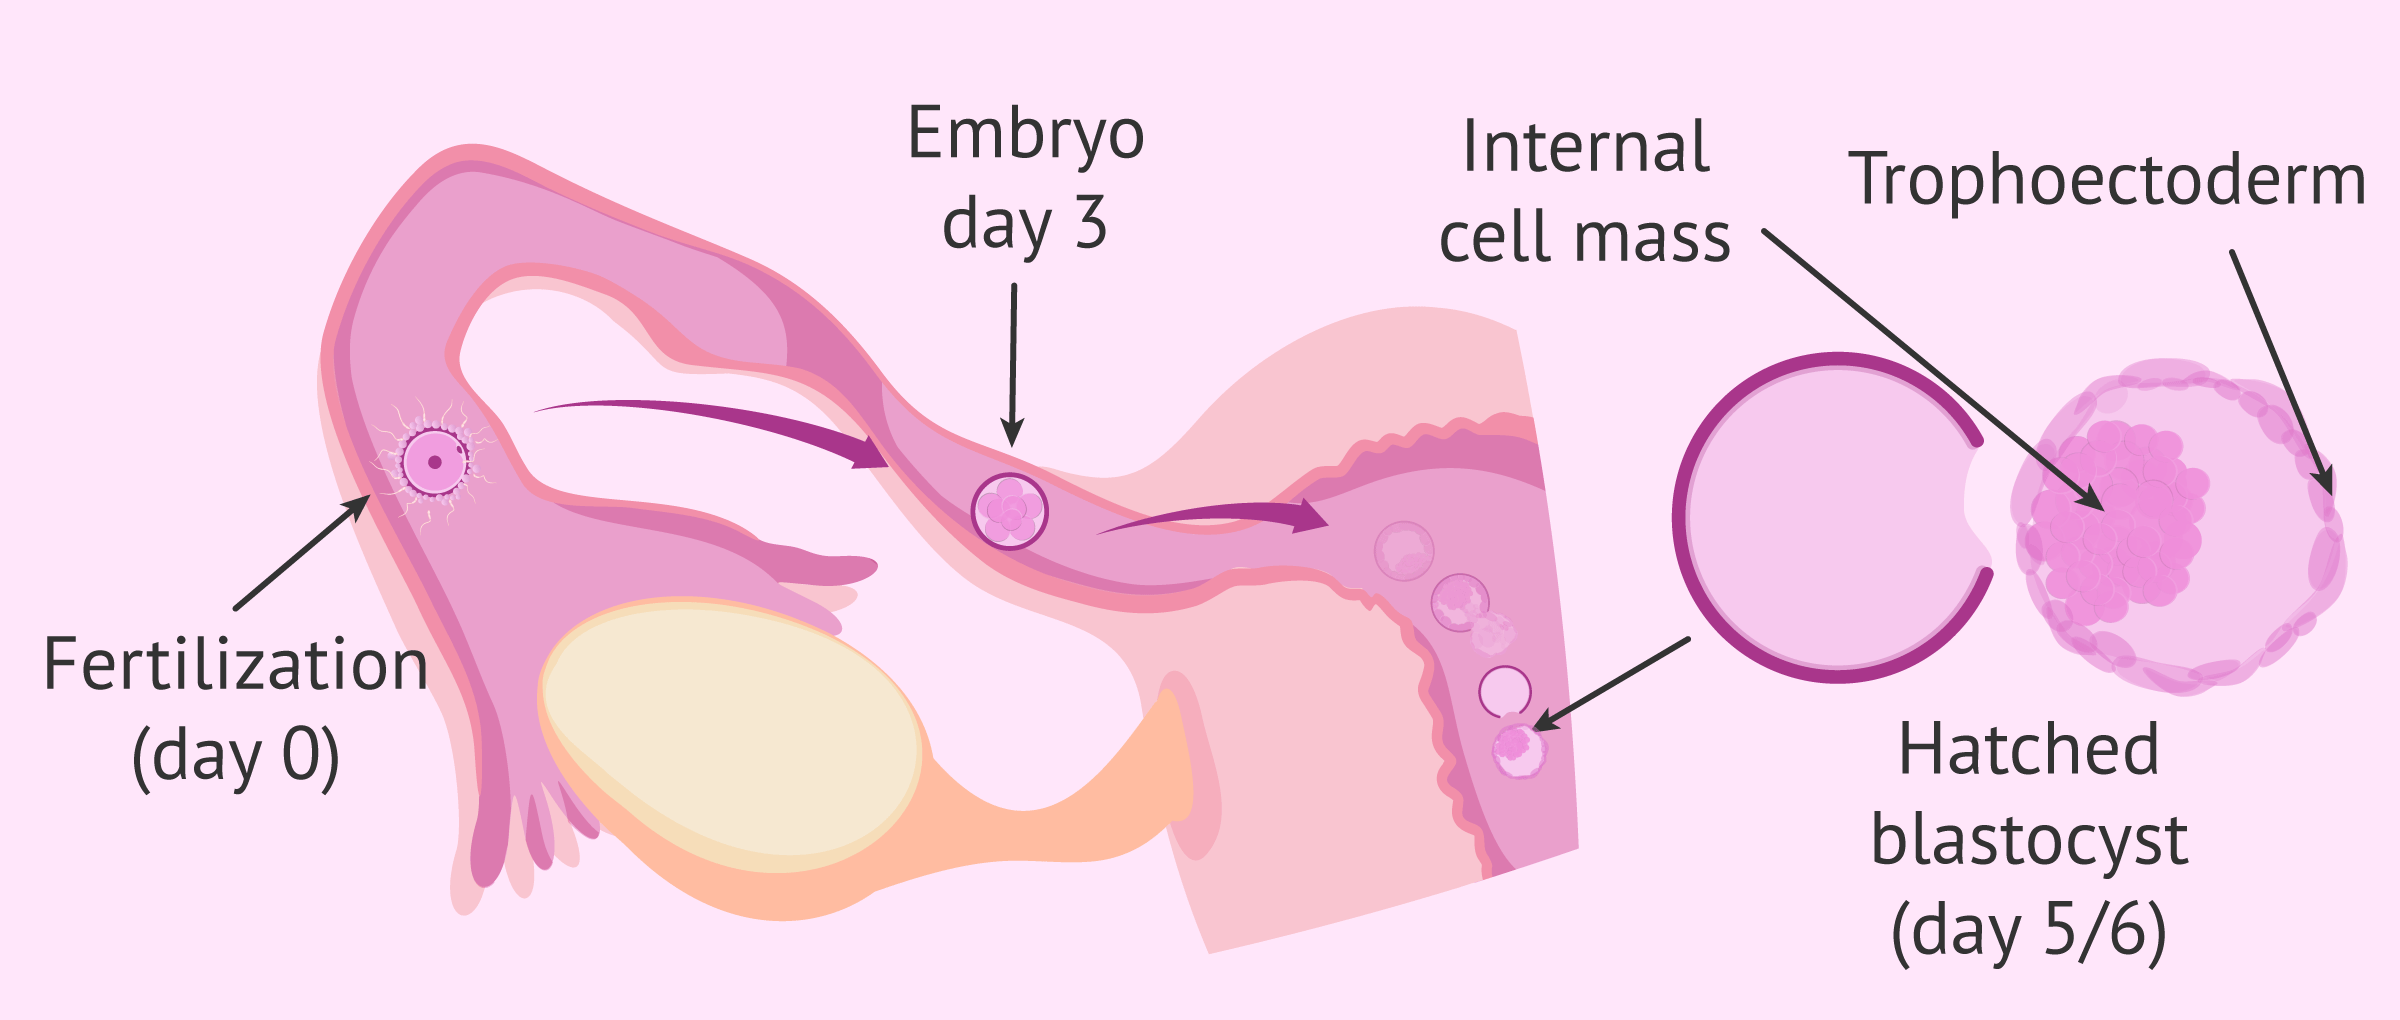 Imagen: Development and implantation of embryo in the uterus